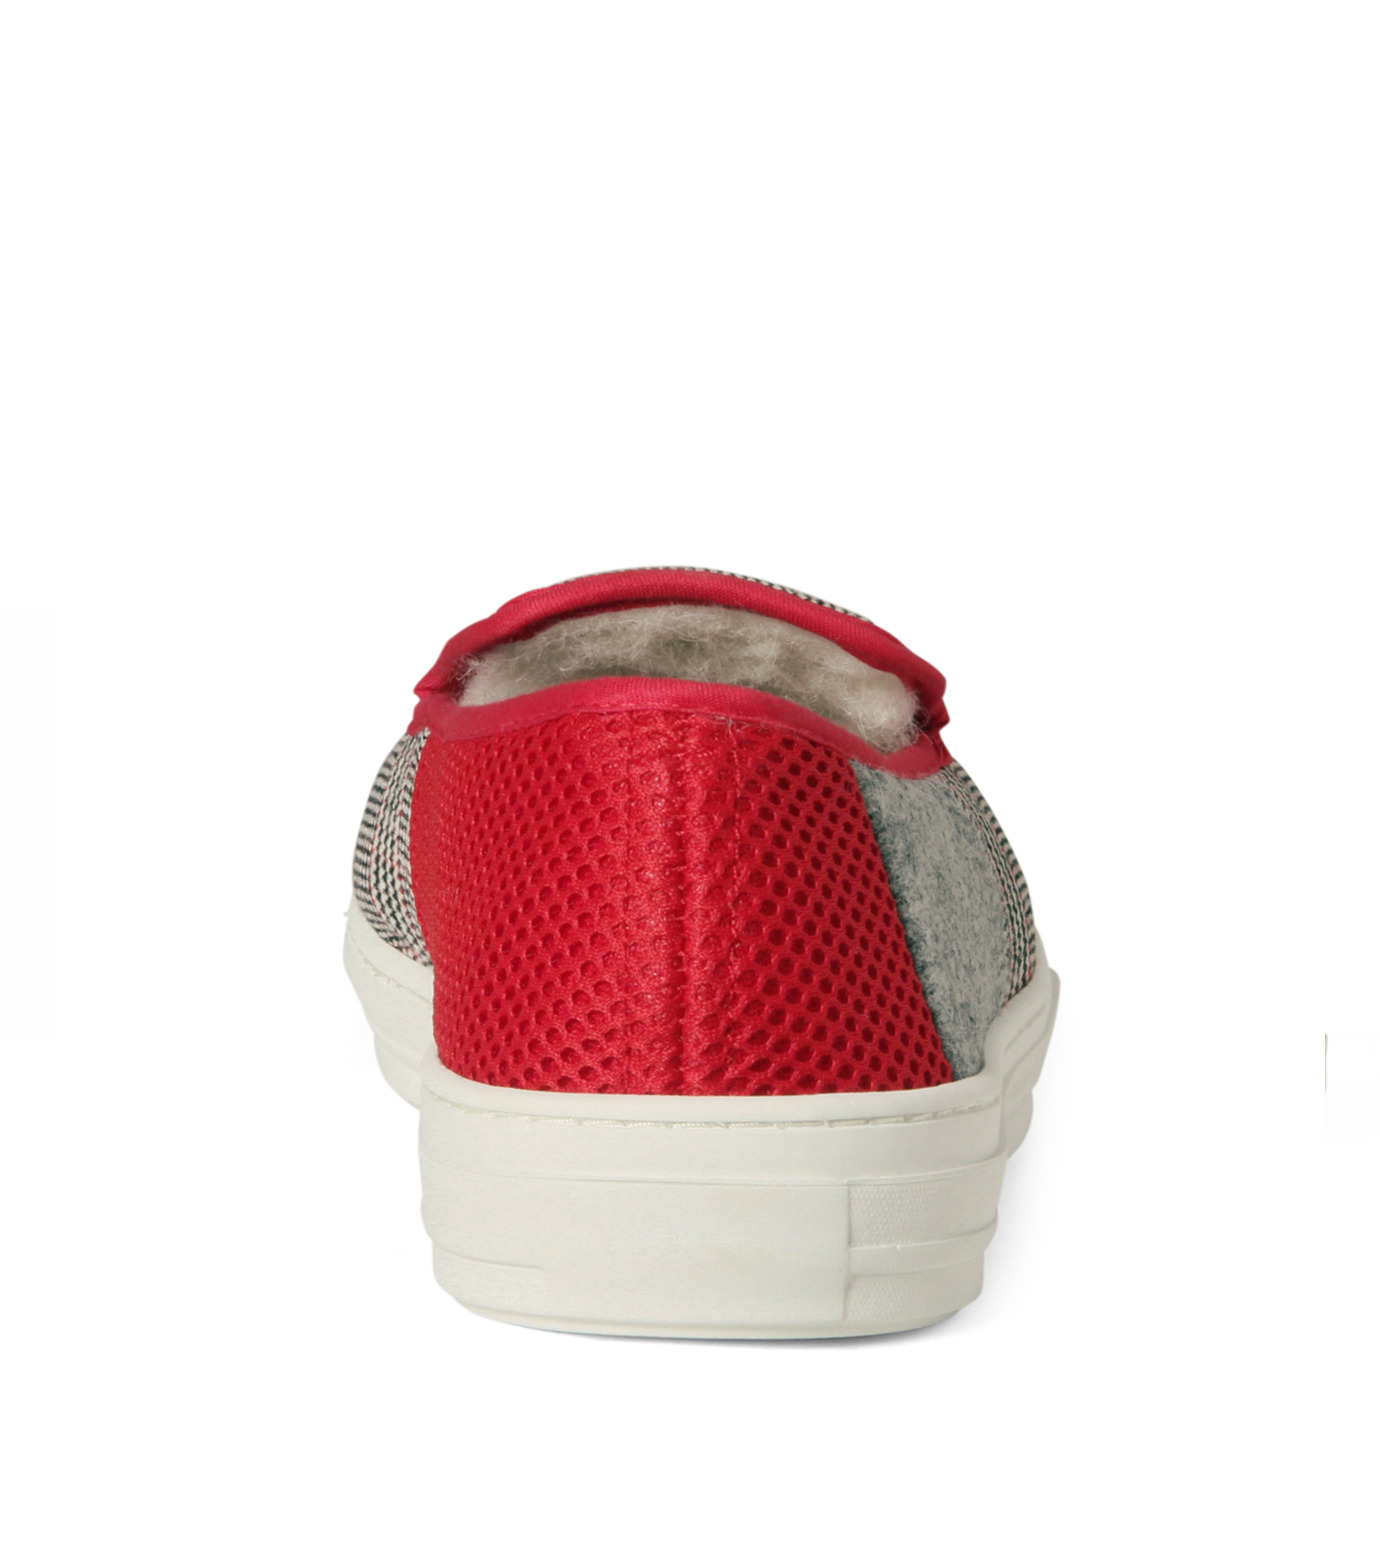 TAISE by SOUSTS(TAISE by SOUSTS)のANATOLE Grey/Red-GRAY(スニーカー/sneaker)-ANATOLE-11 拡大詳細画像3